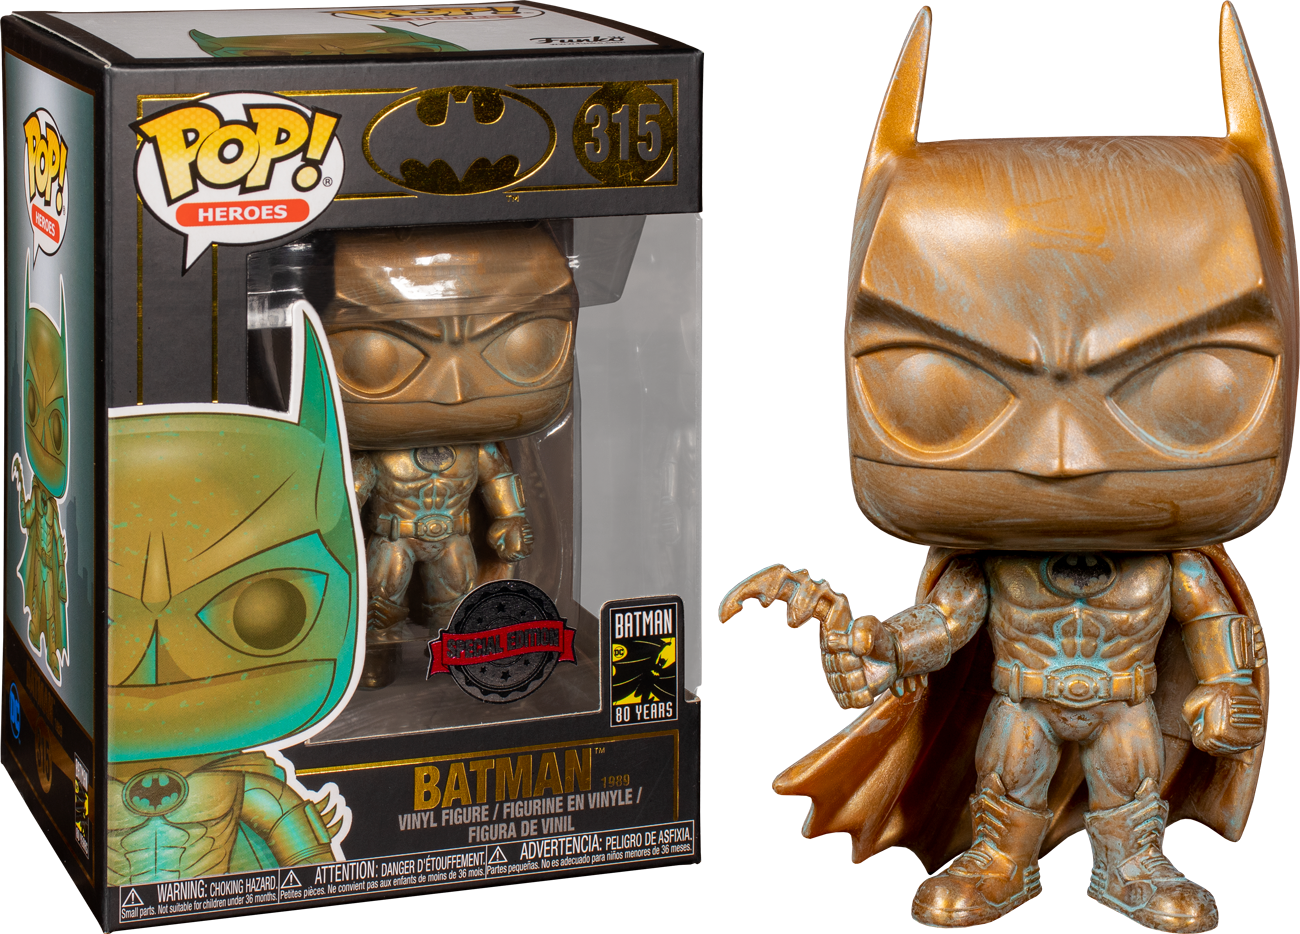 Batman (1989) POP! Heroes Vinyl Figure Batman Patina 80th Anniversary  Limited 9 cm